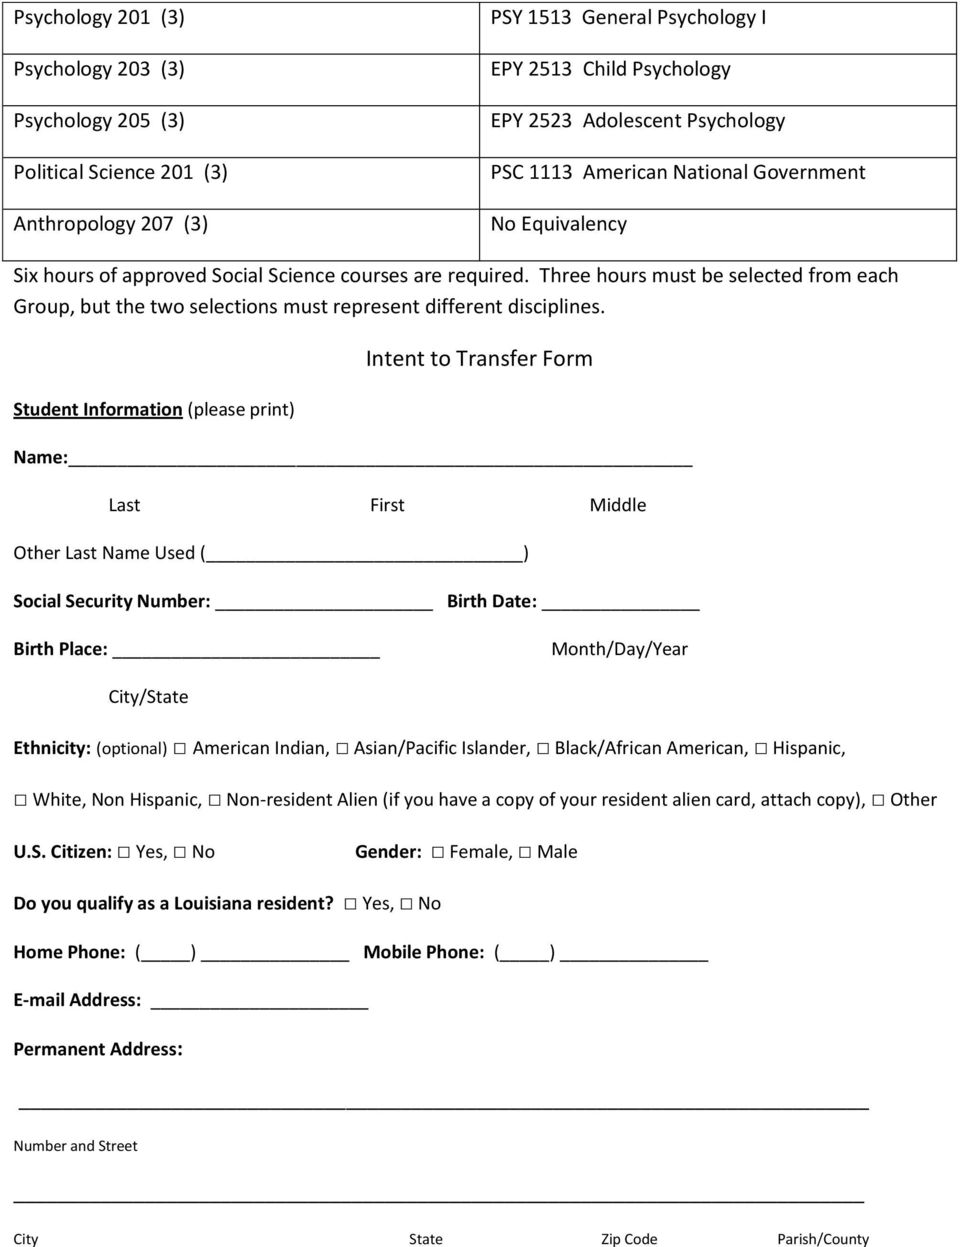 Student Information (please print) Intent to Transfer Form Name: Last First Middle Other Last Name Used ( ) Social Security Number: Birth Date: Birth Place: Month/Day/Year City/State Ethnicity: